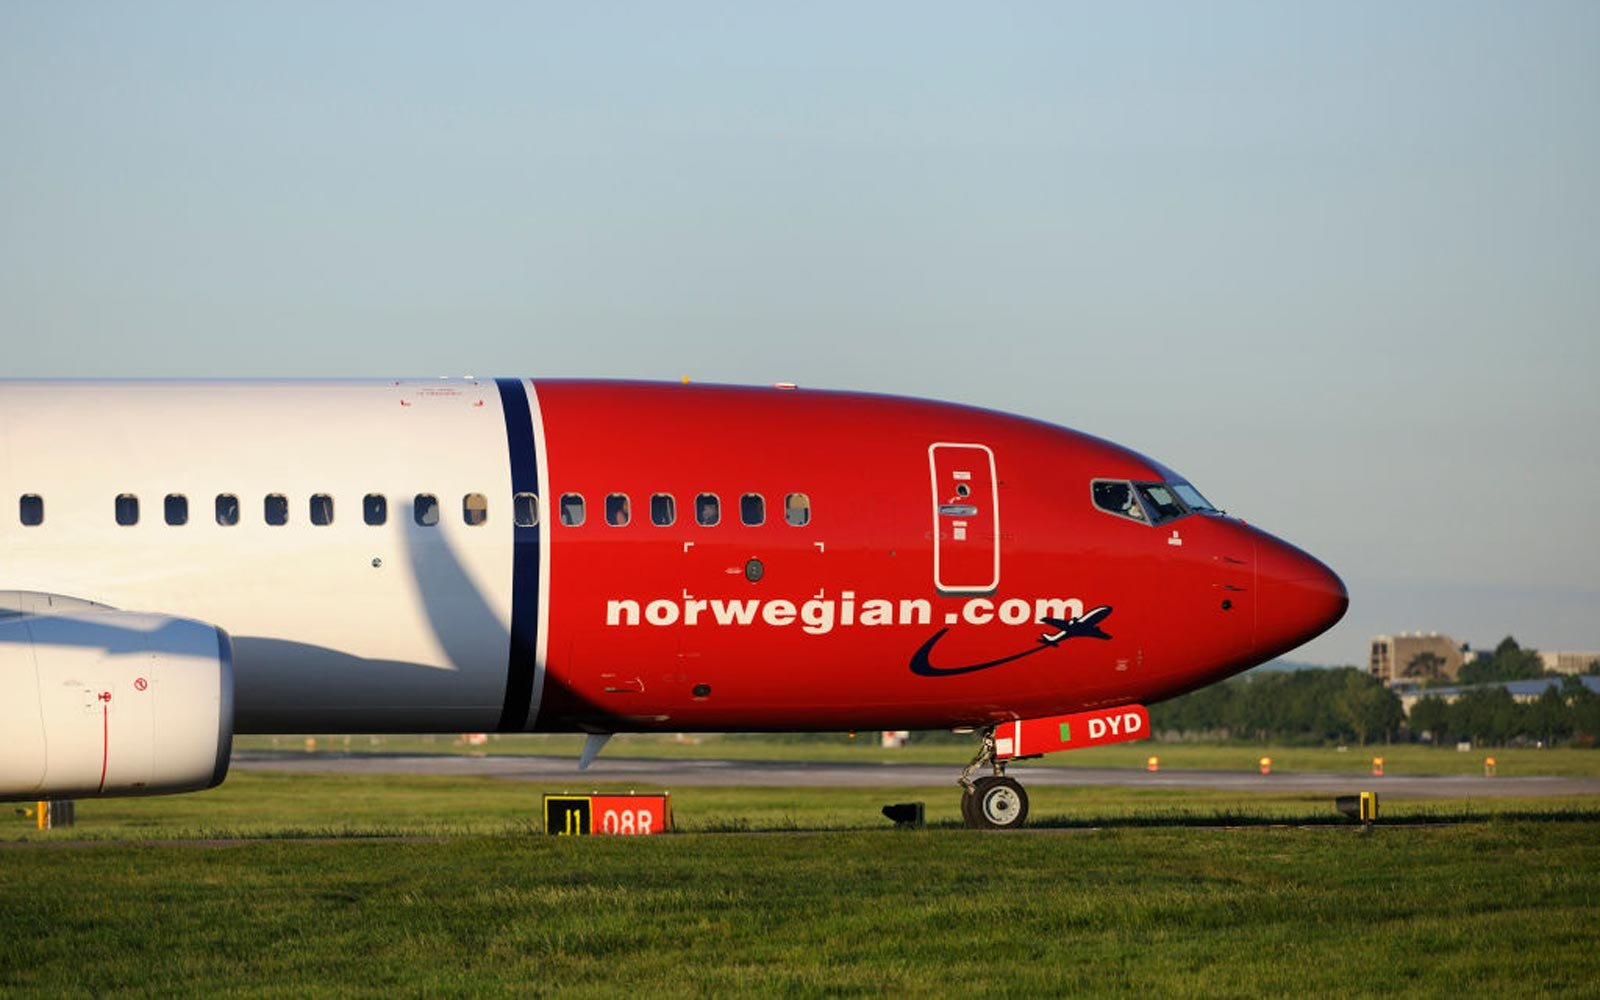 JetBlue and Norwegian are bringing cheaper European flights to smaller U.S. cities